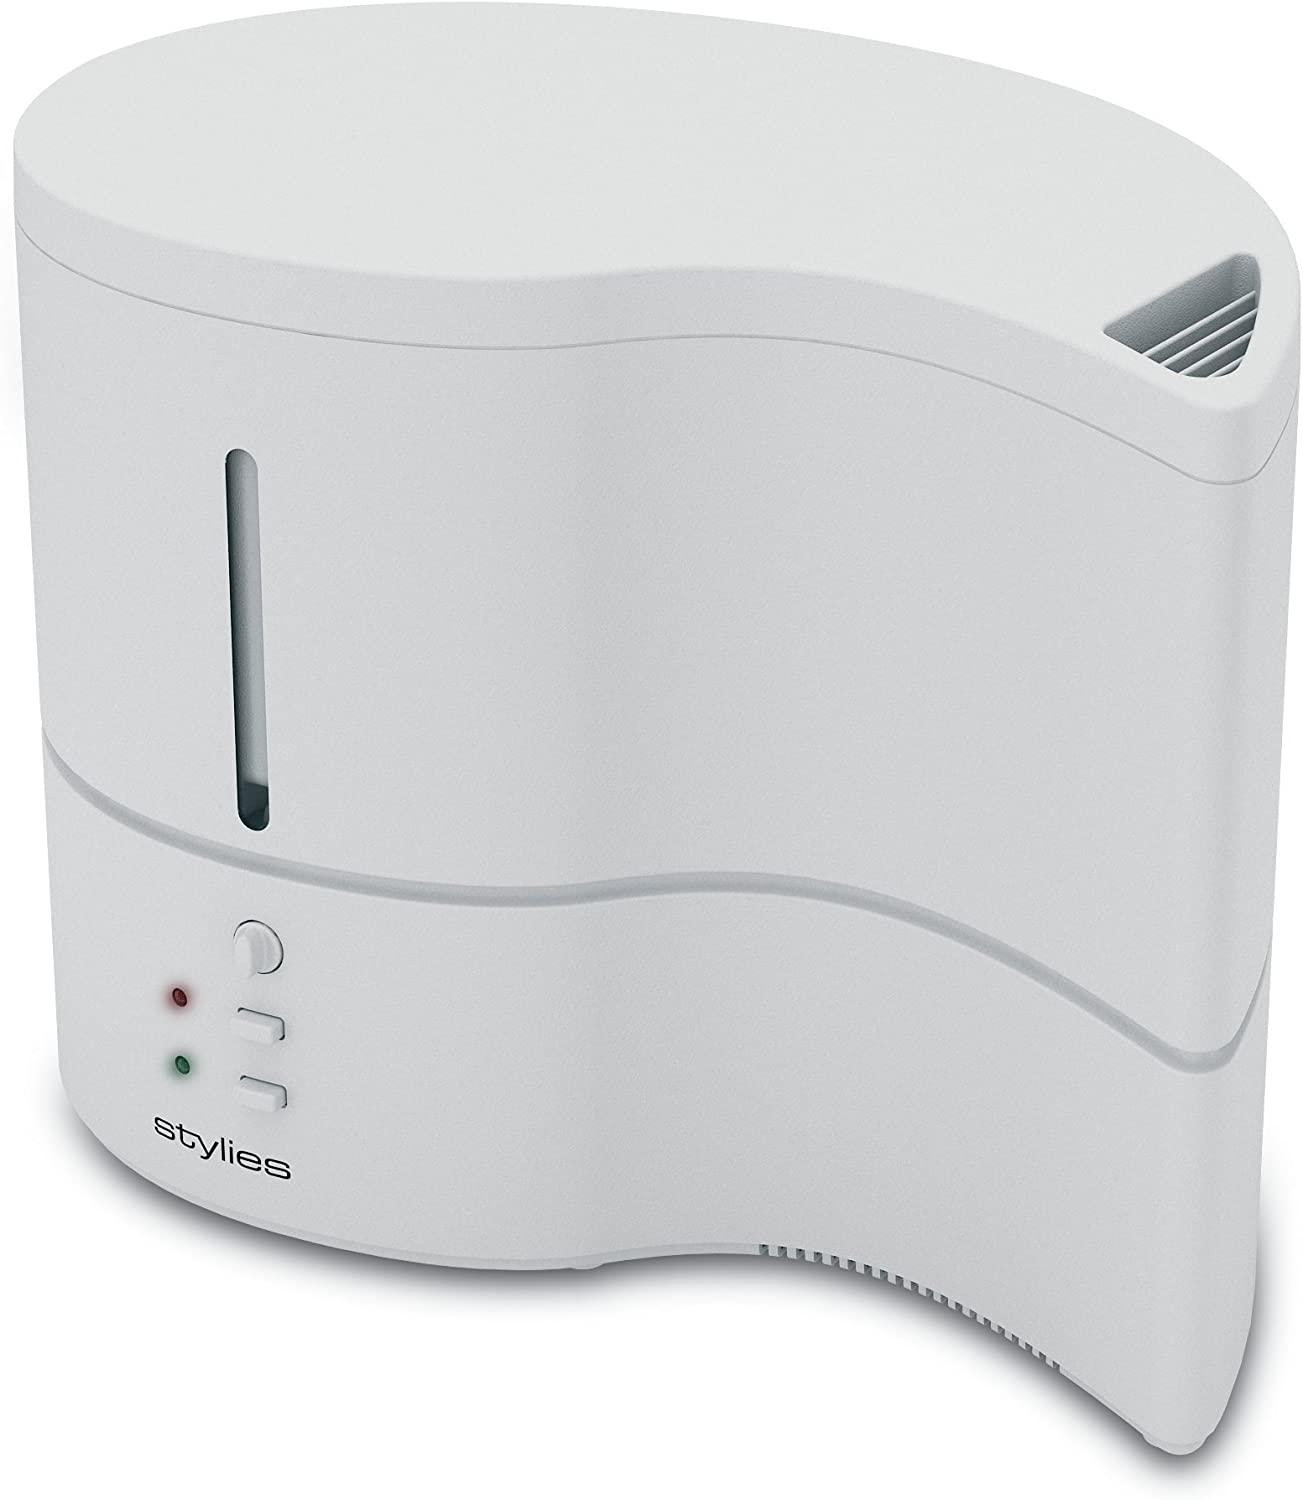 Stylies HAU271 Taurus, 480 W, Color blanco: Amazon.es: Hogar